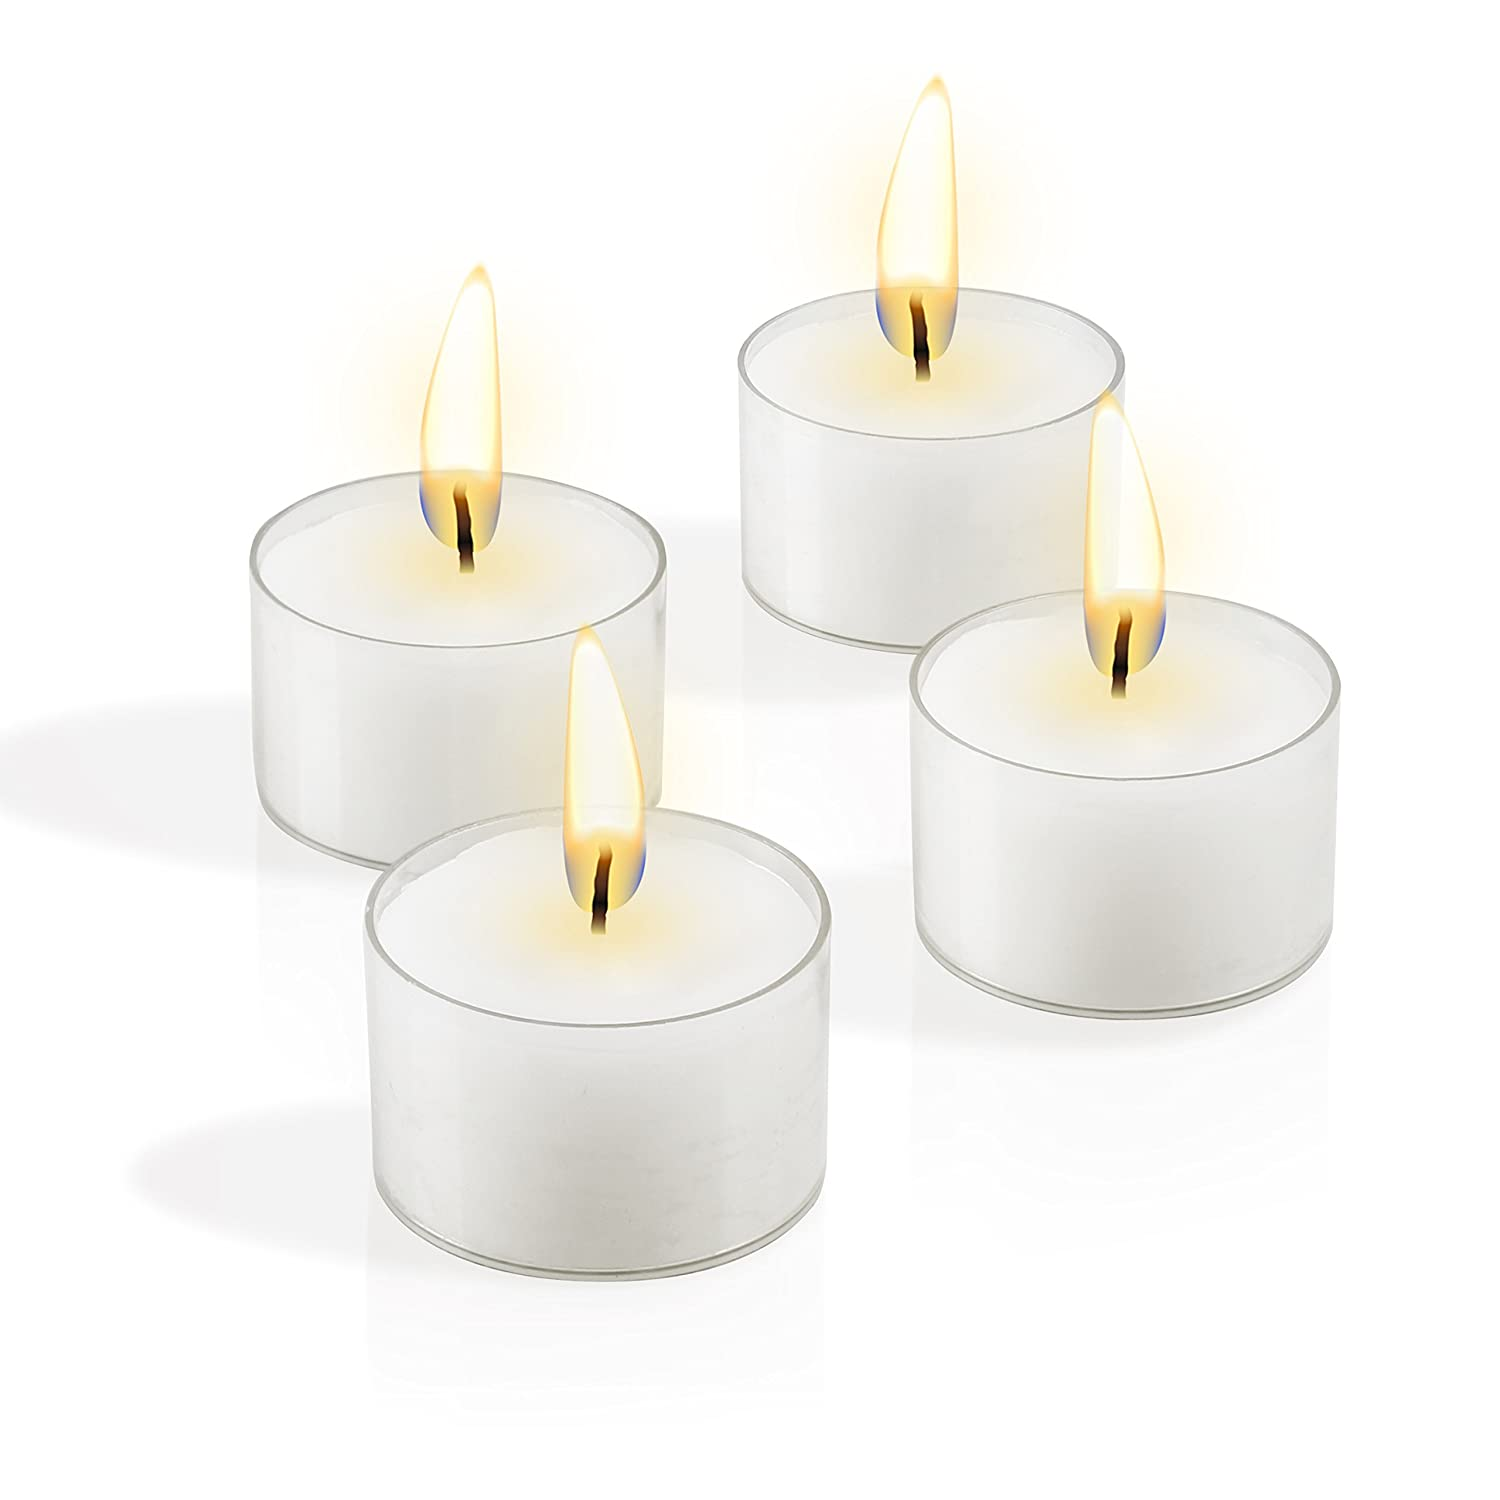 set of 48 Simcha Tealight Candles Top Quality No Messy Cleanup Easy Disposal Protects Surfaces Sophisticated Design Burns 8 Hours White Unscented in clear cups